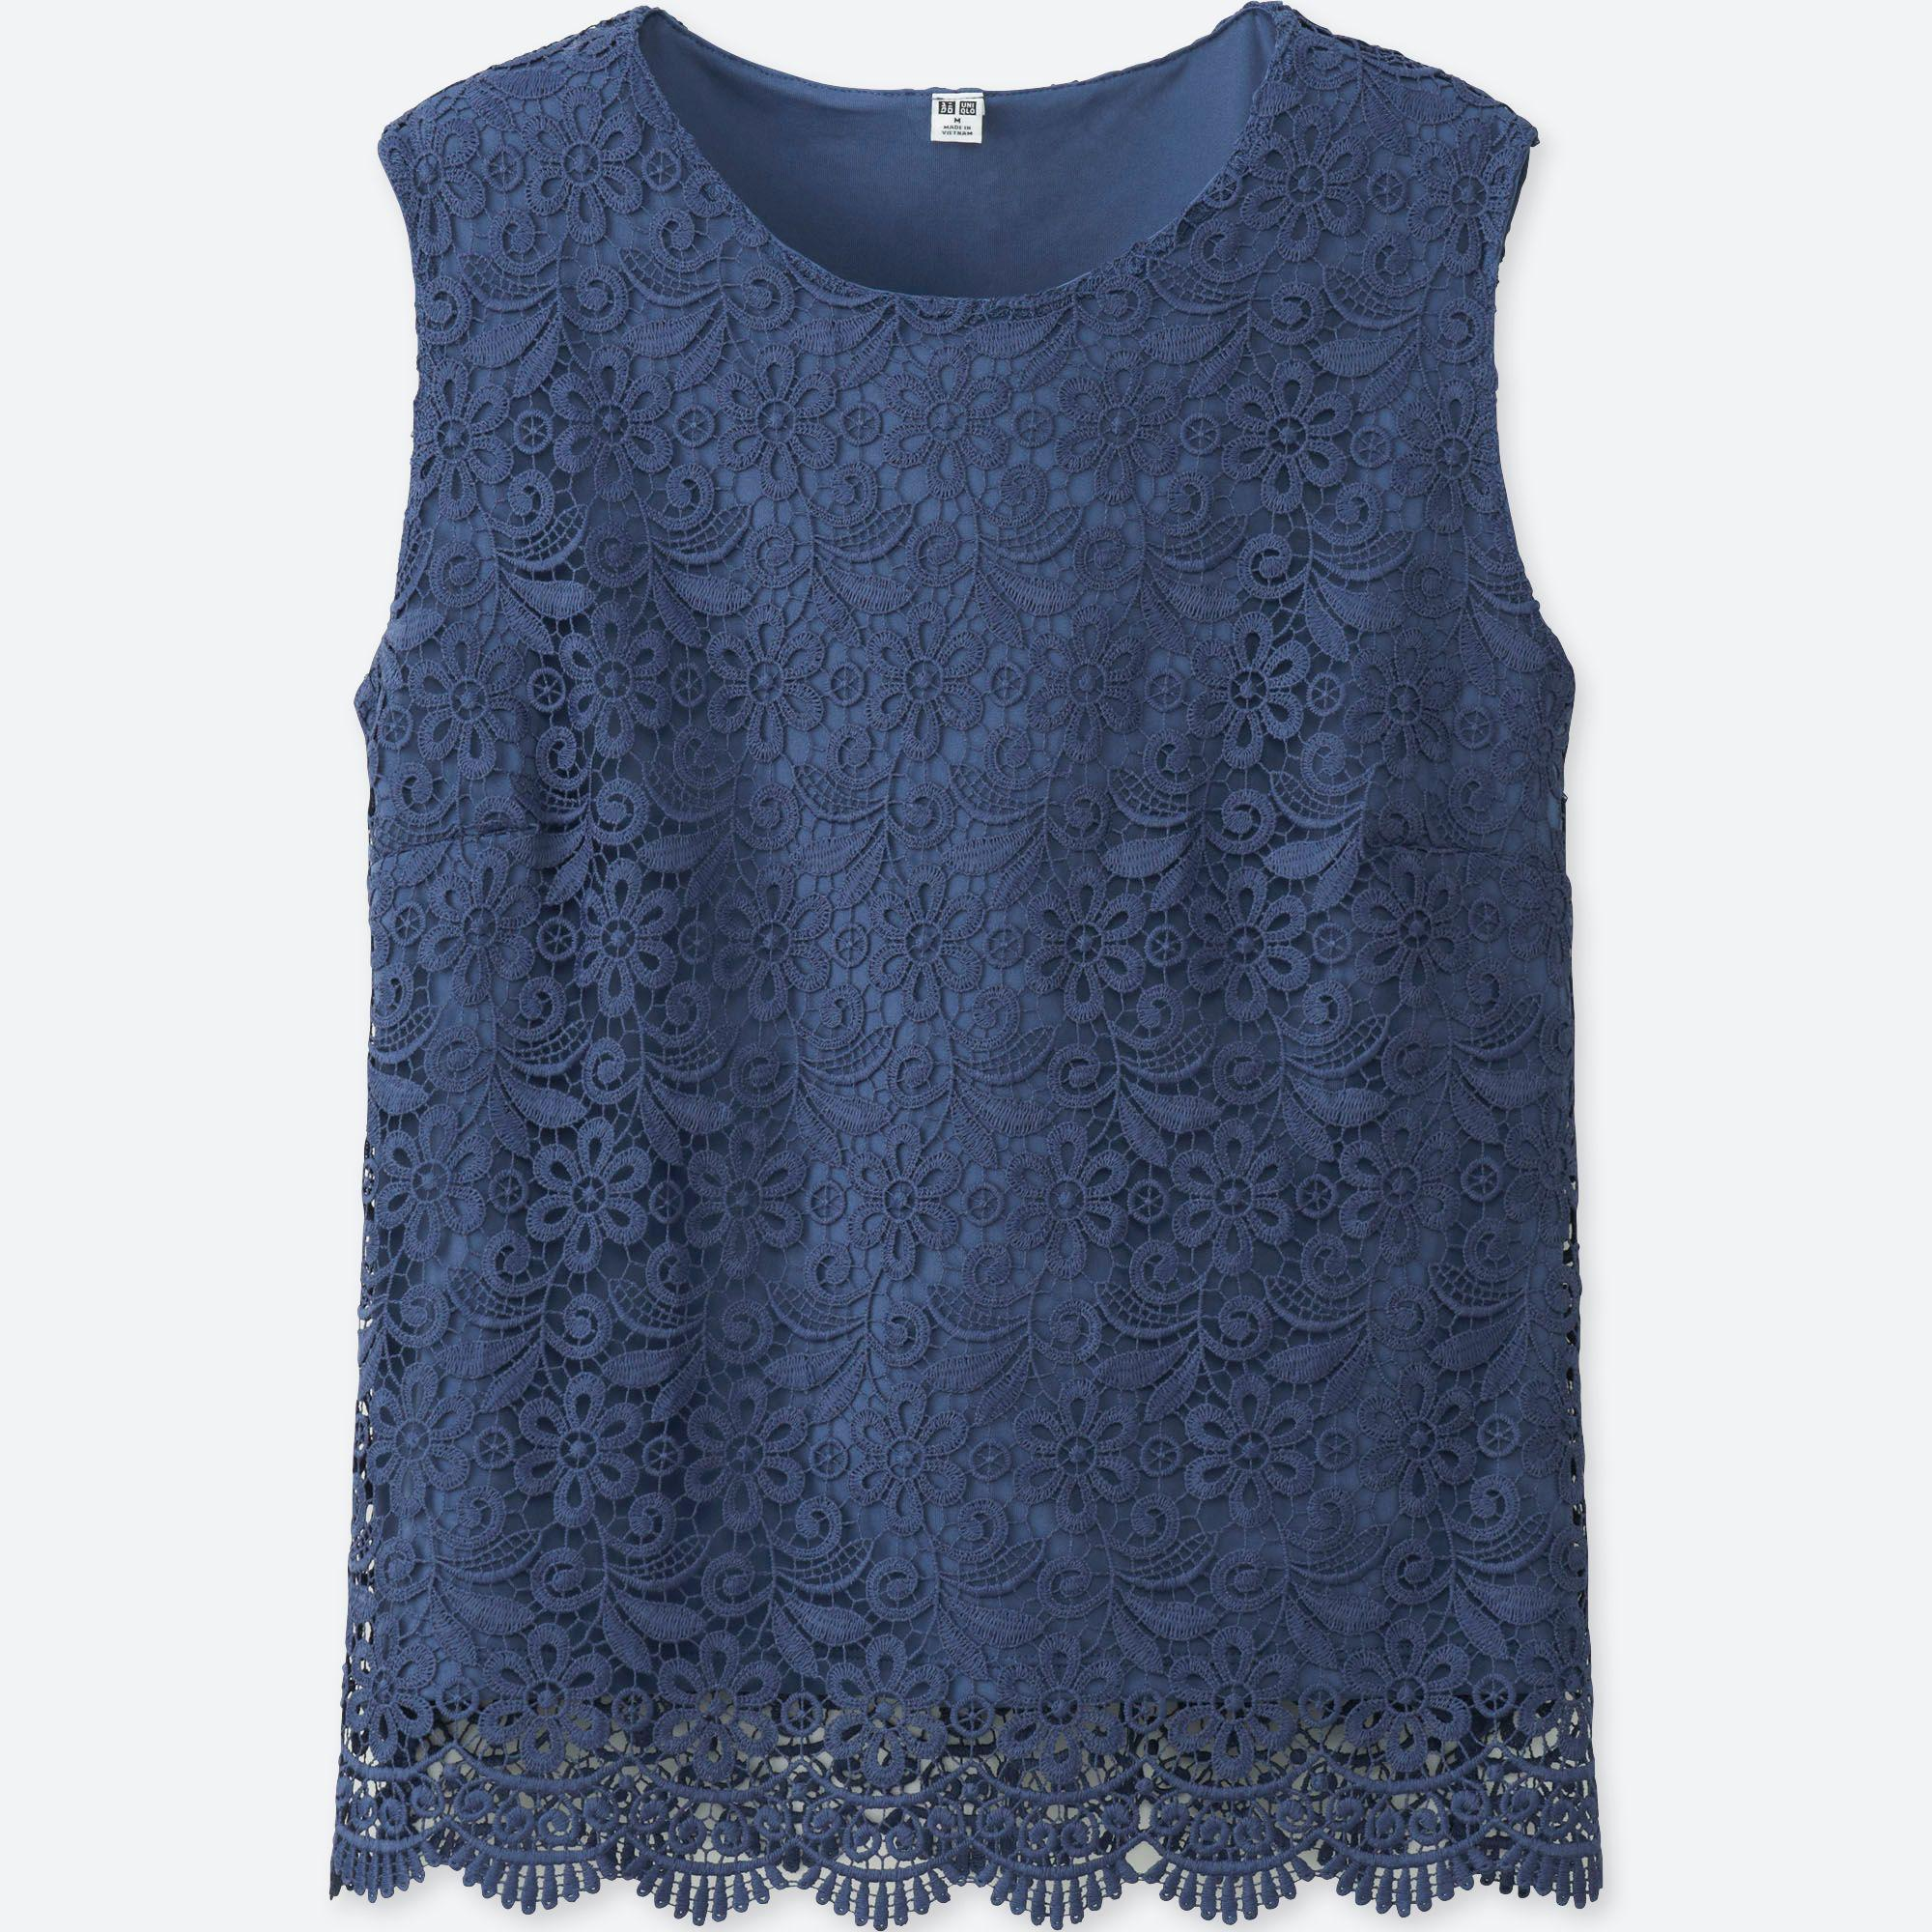 80bb728910994c Uniqlo Lace Sleeveless T-shirt in Blue - Lyst